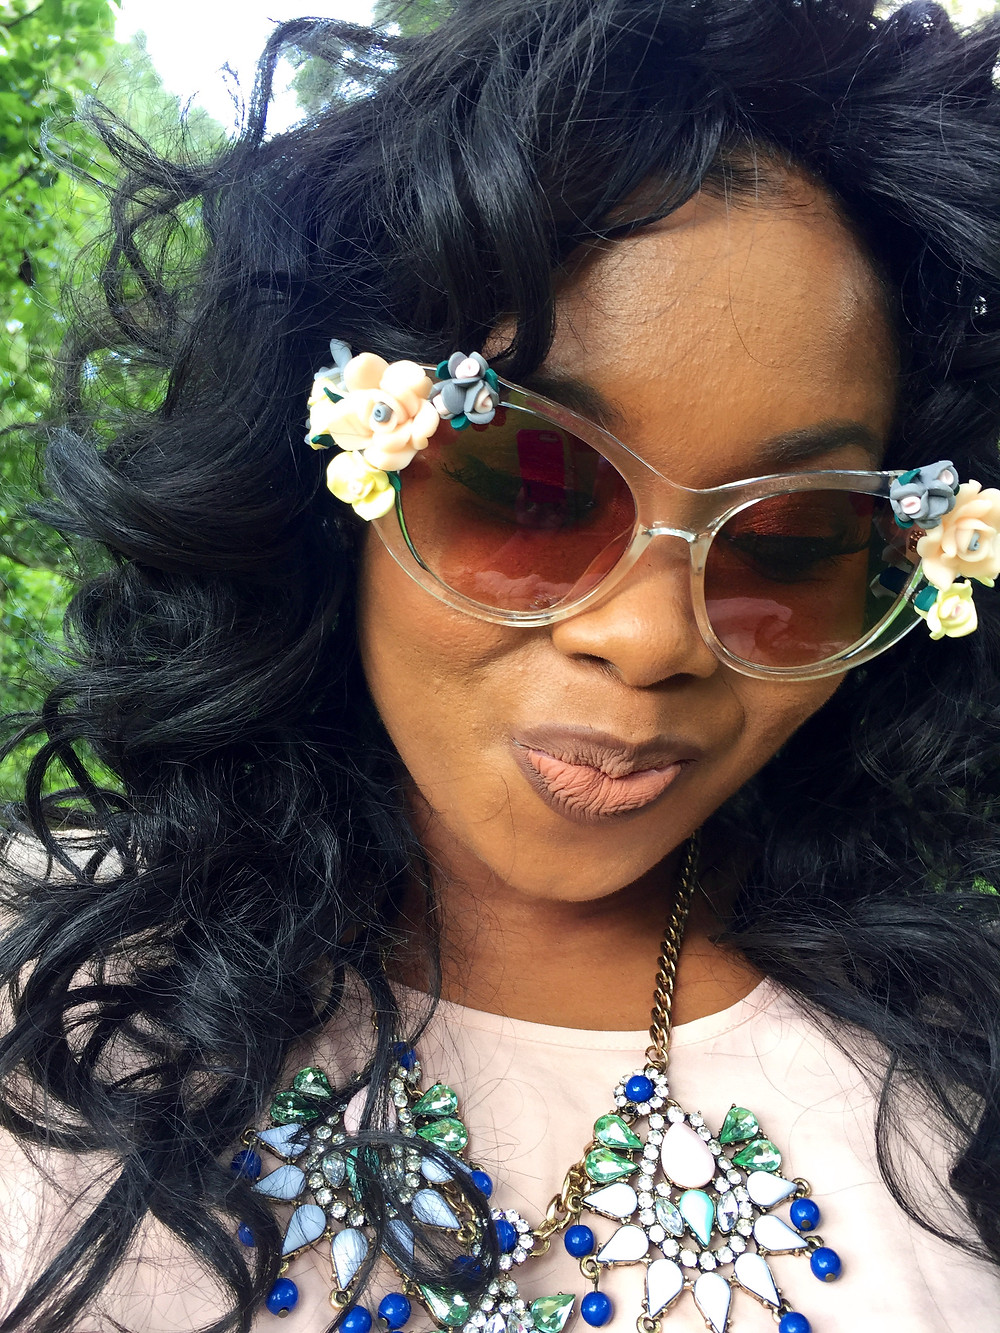 """The """"Baroque"""" Clear Sunnies Are Absolutely Stunning. www.crownedinroyalty.com"""